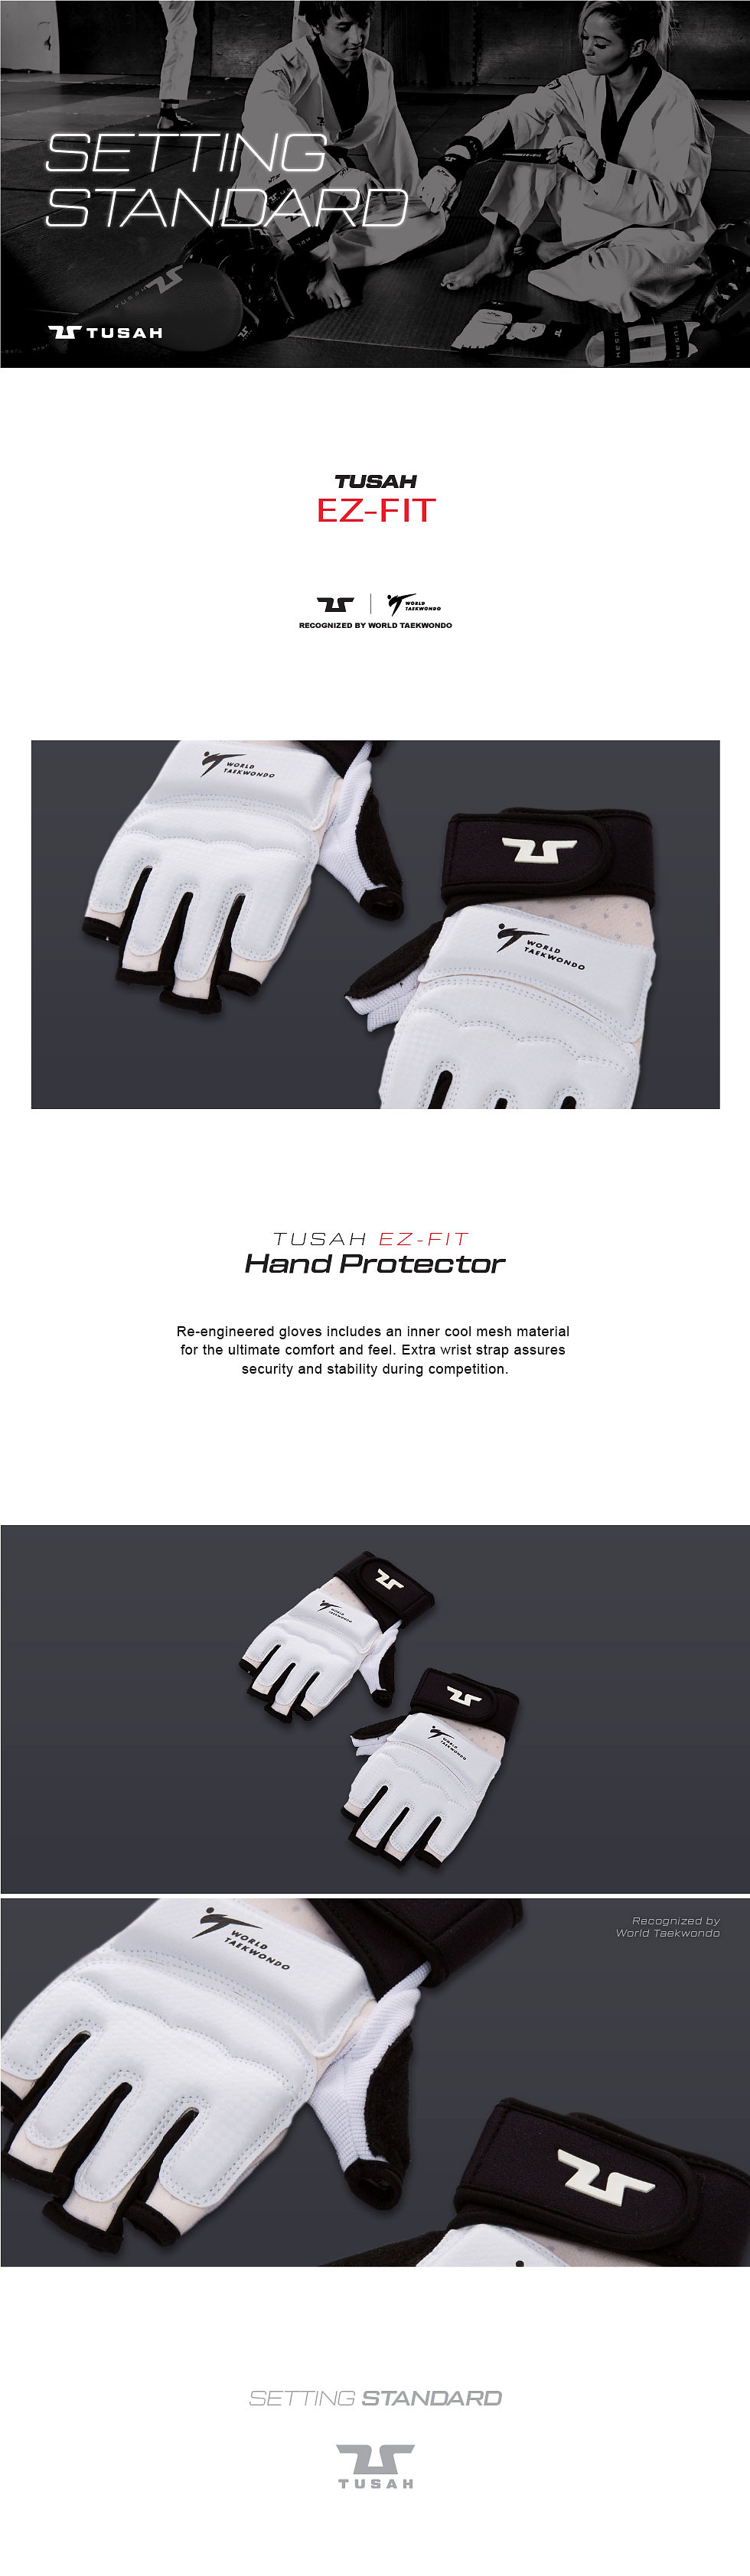 sparring-handprotector1.jpg